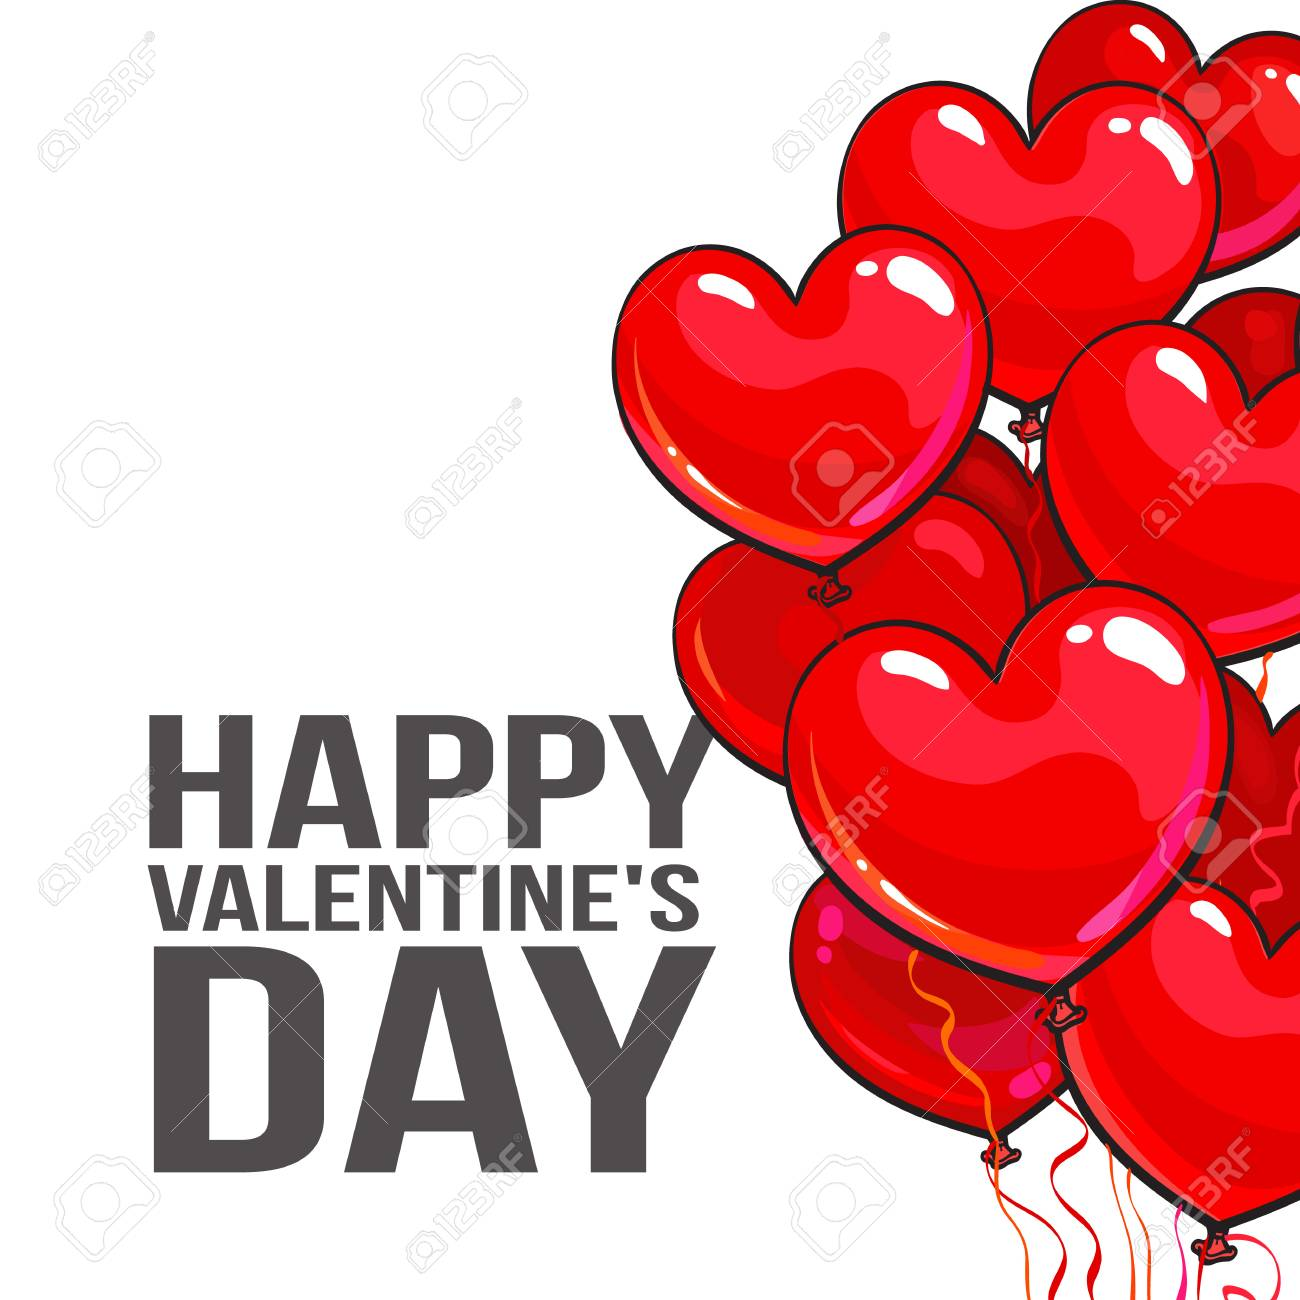 Valentine day greeting card with a bunch of glossy heart shaped valentine day greeting card with a bunch of glossy heart shaped balloons on white background m4hsunfo